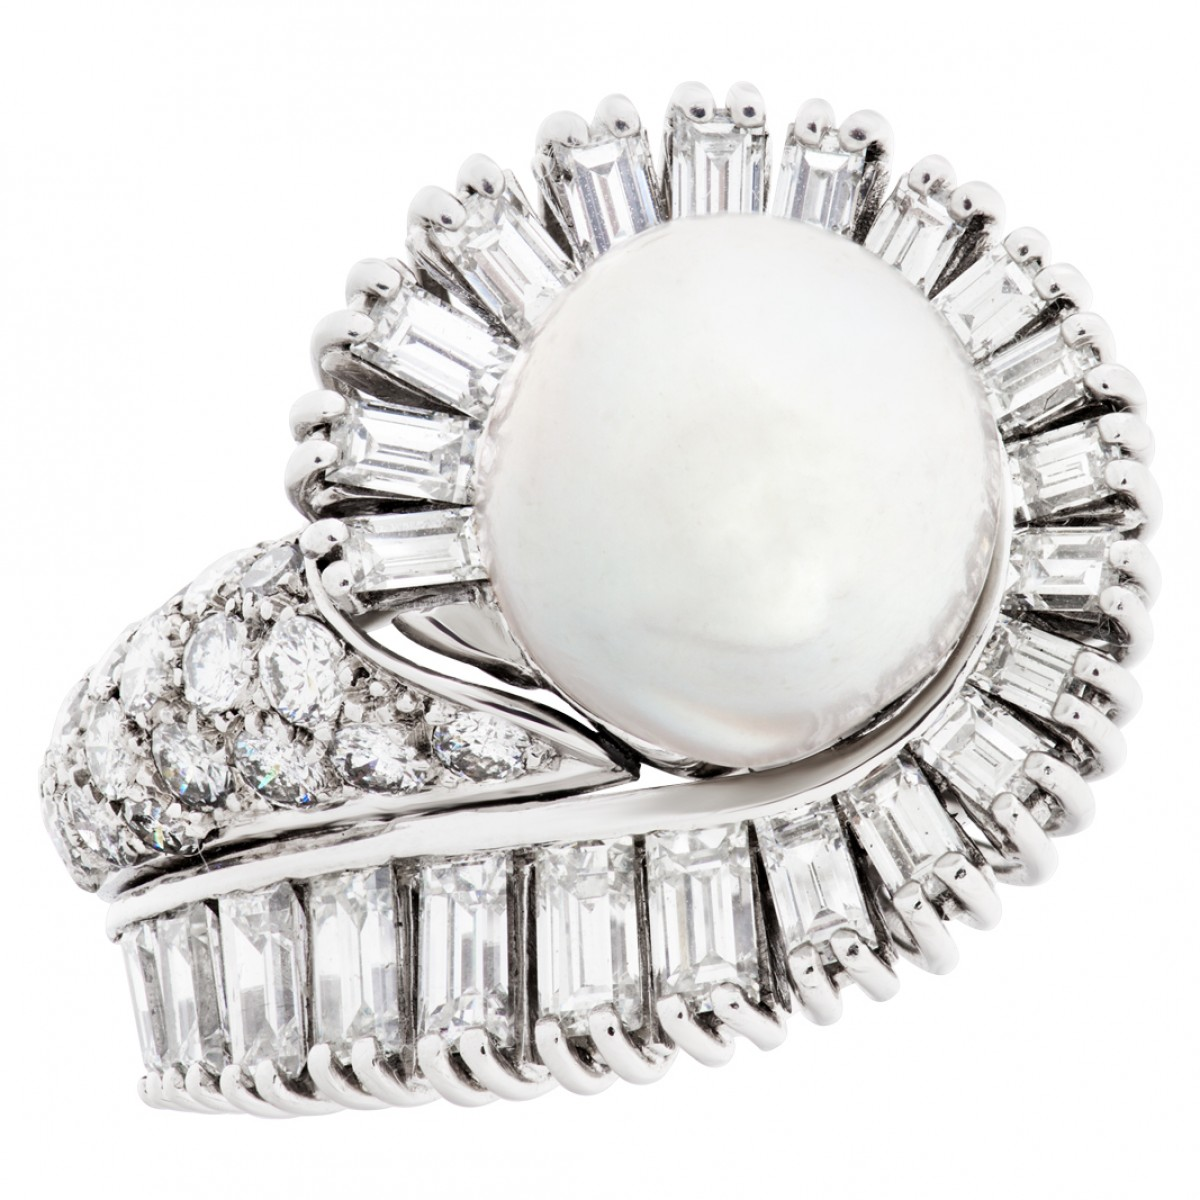 s514552 silver pearl ring set in platinum with approx 2